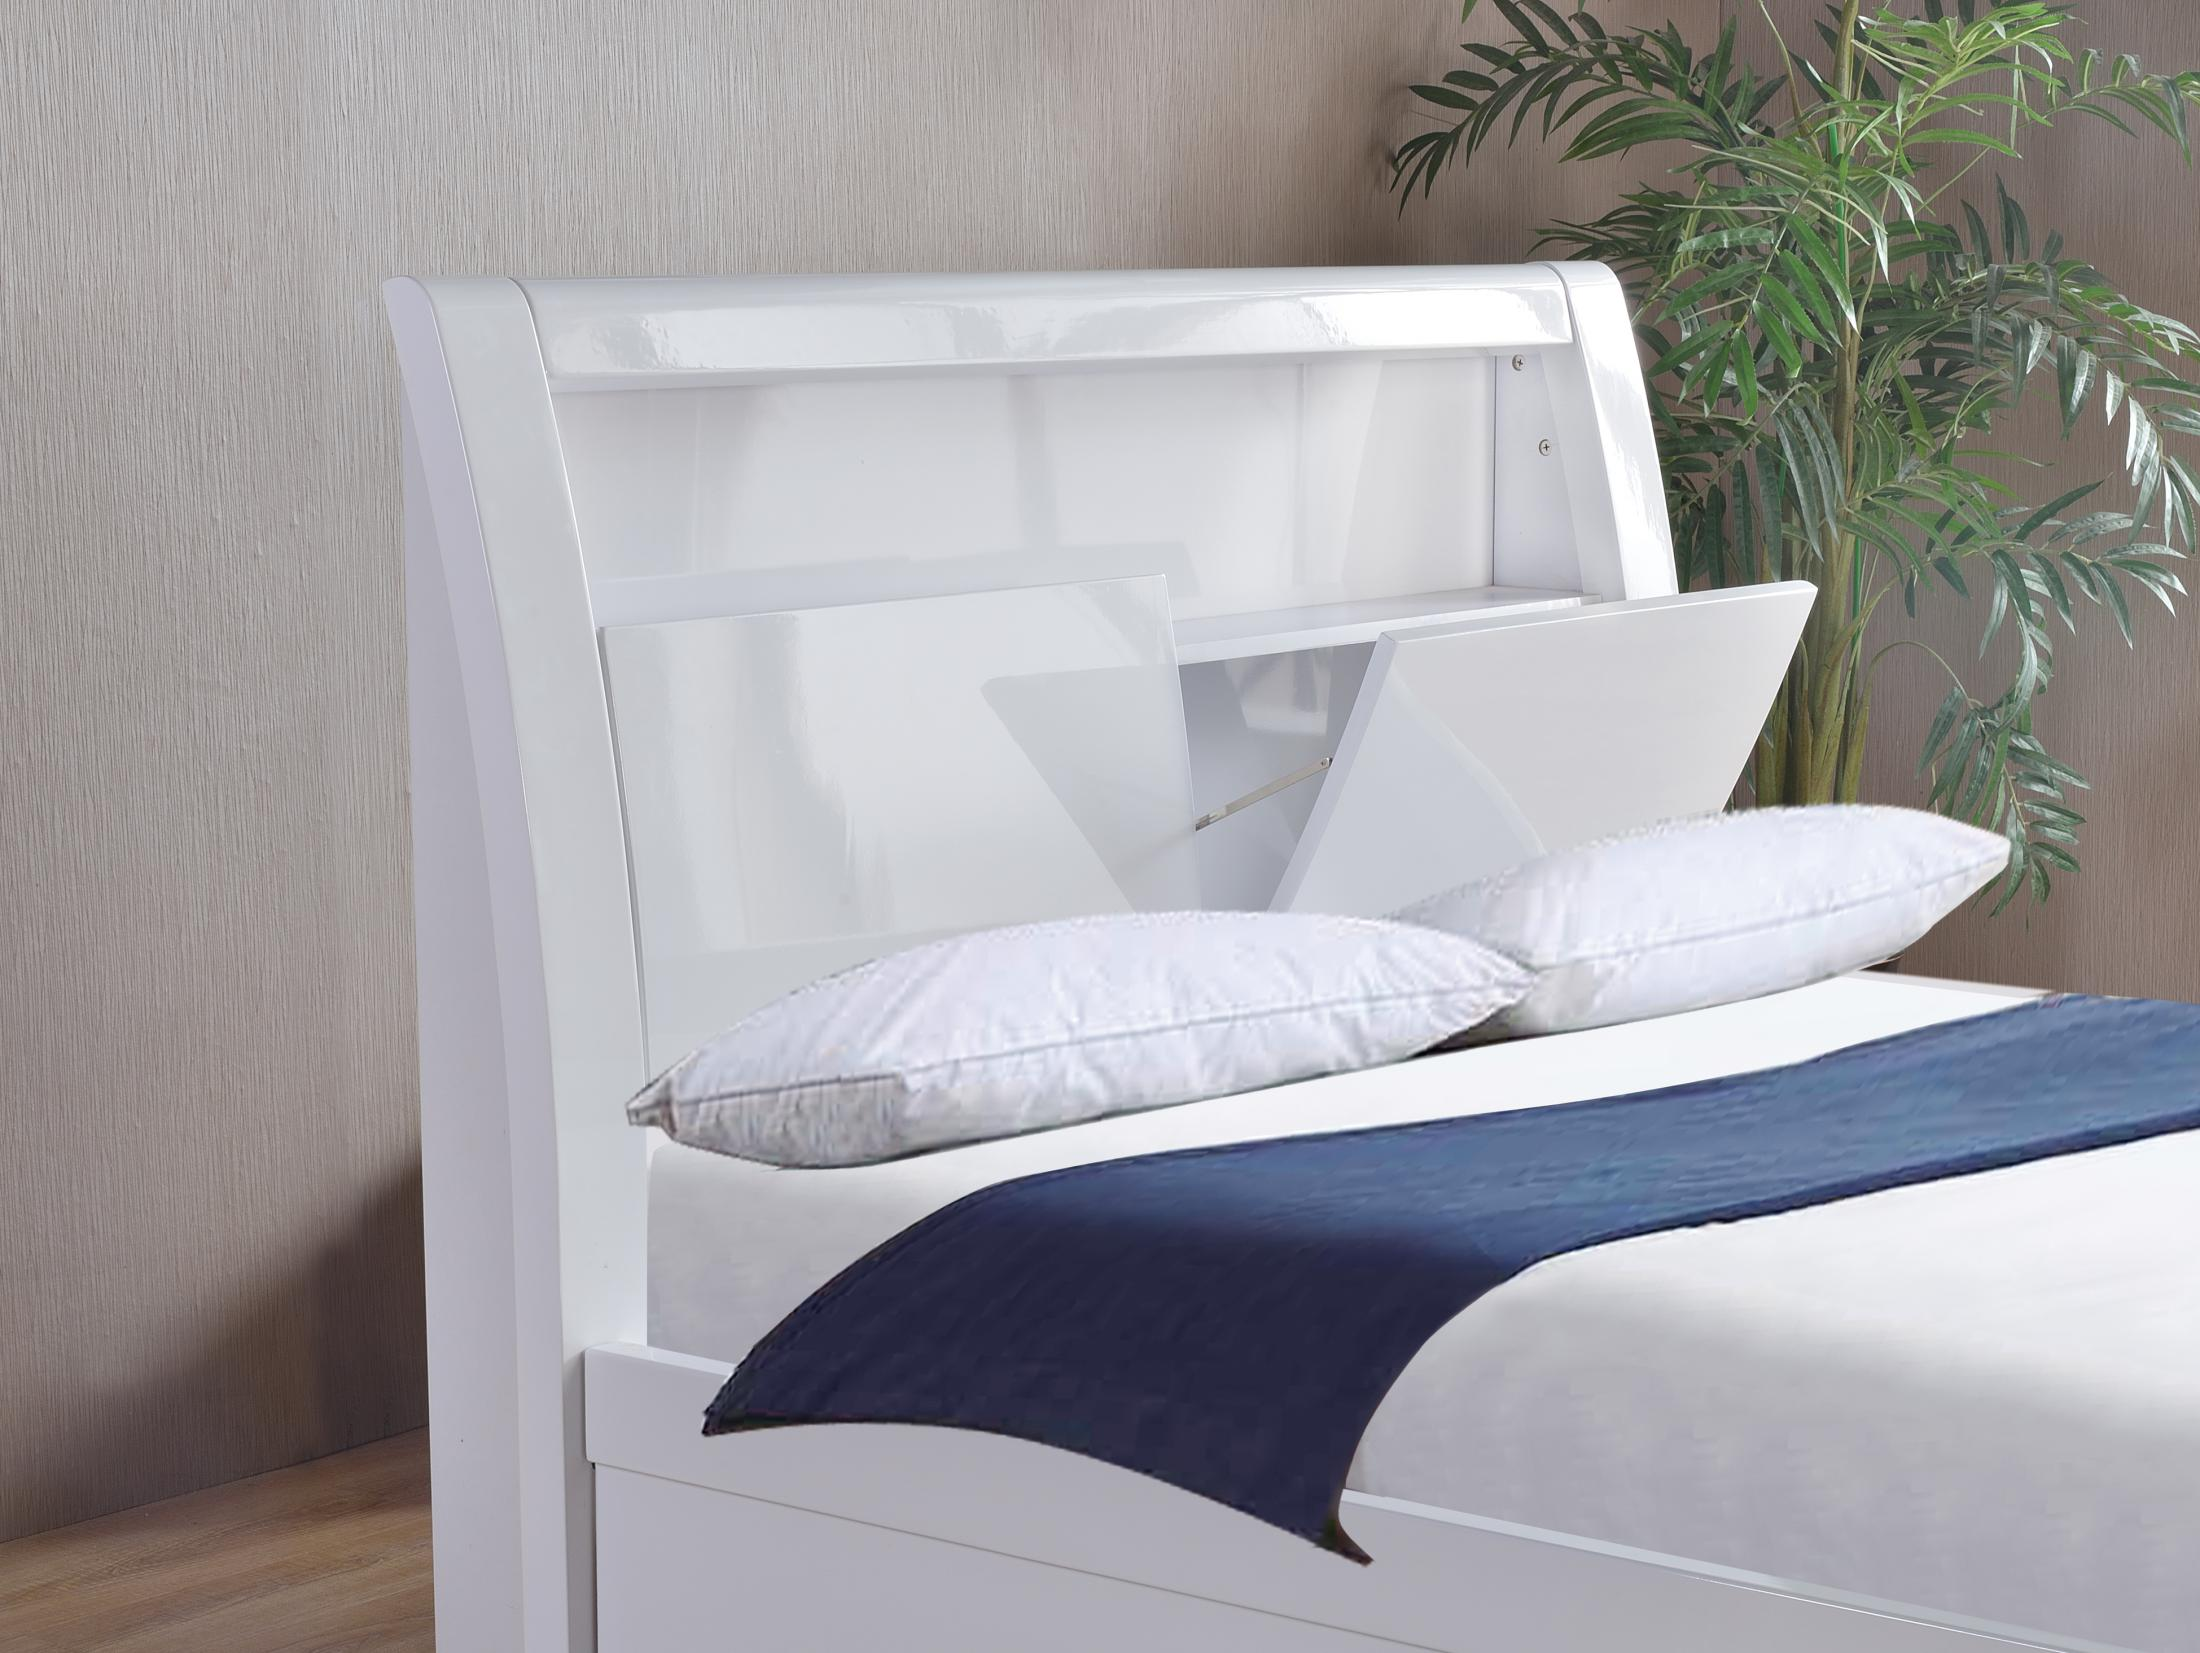 Heartlands Furniture Products Tanyks Beds King Size